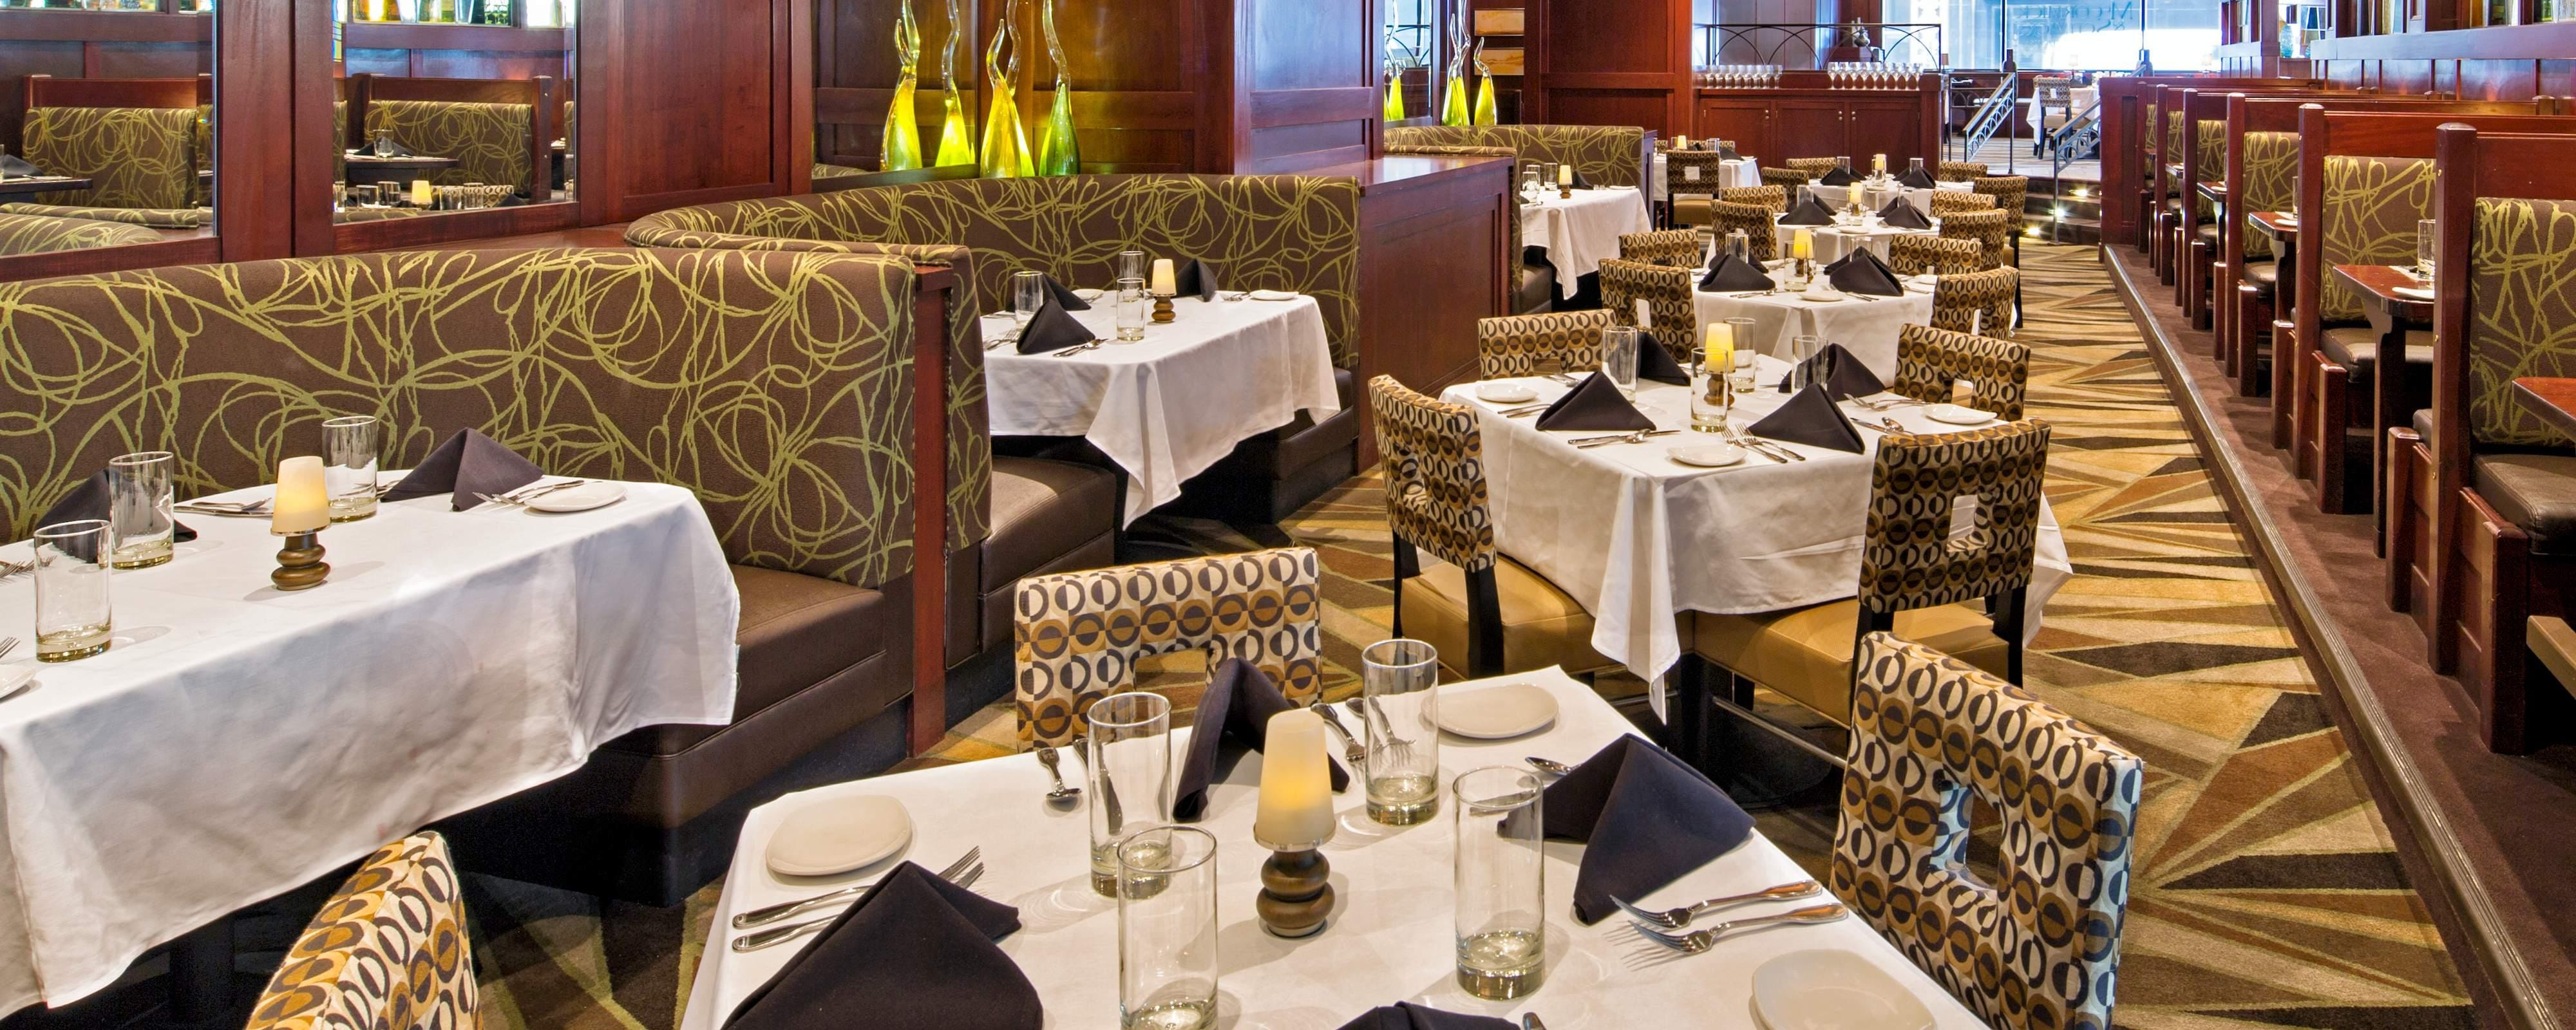 Hotel Dining Restaurants The Westin Cincinnati